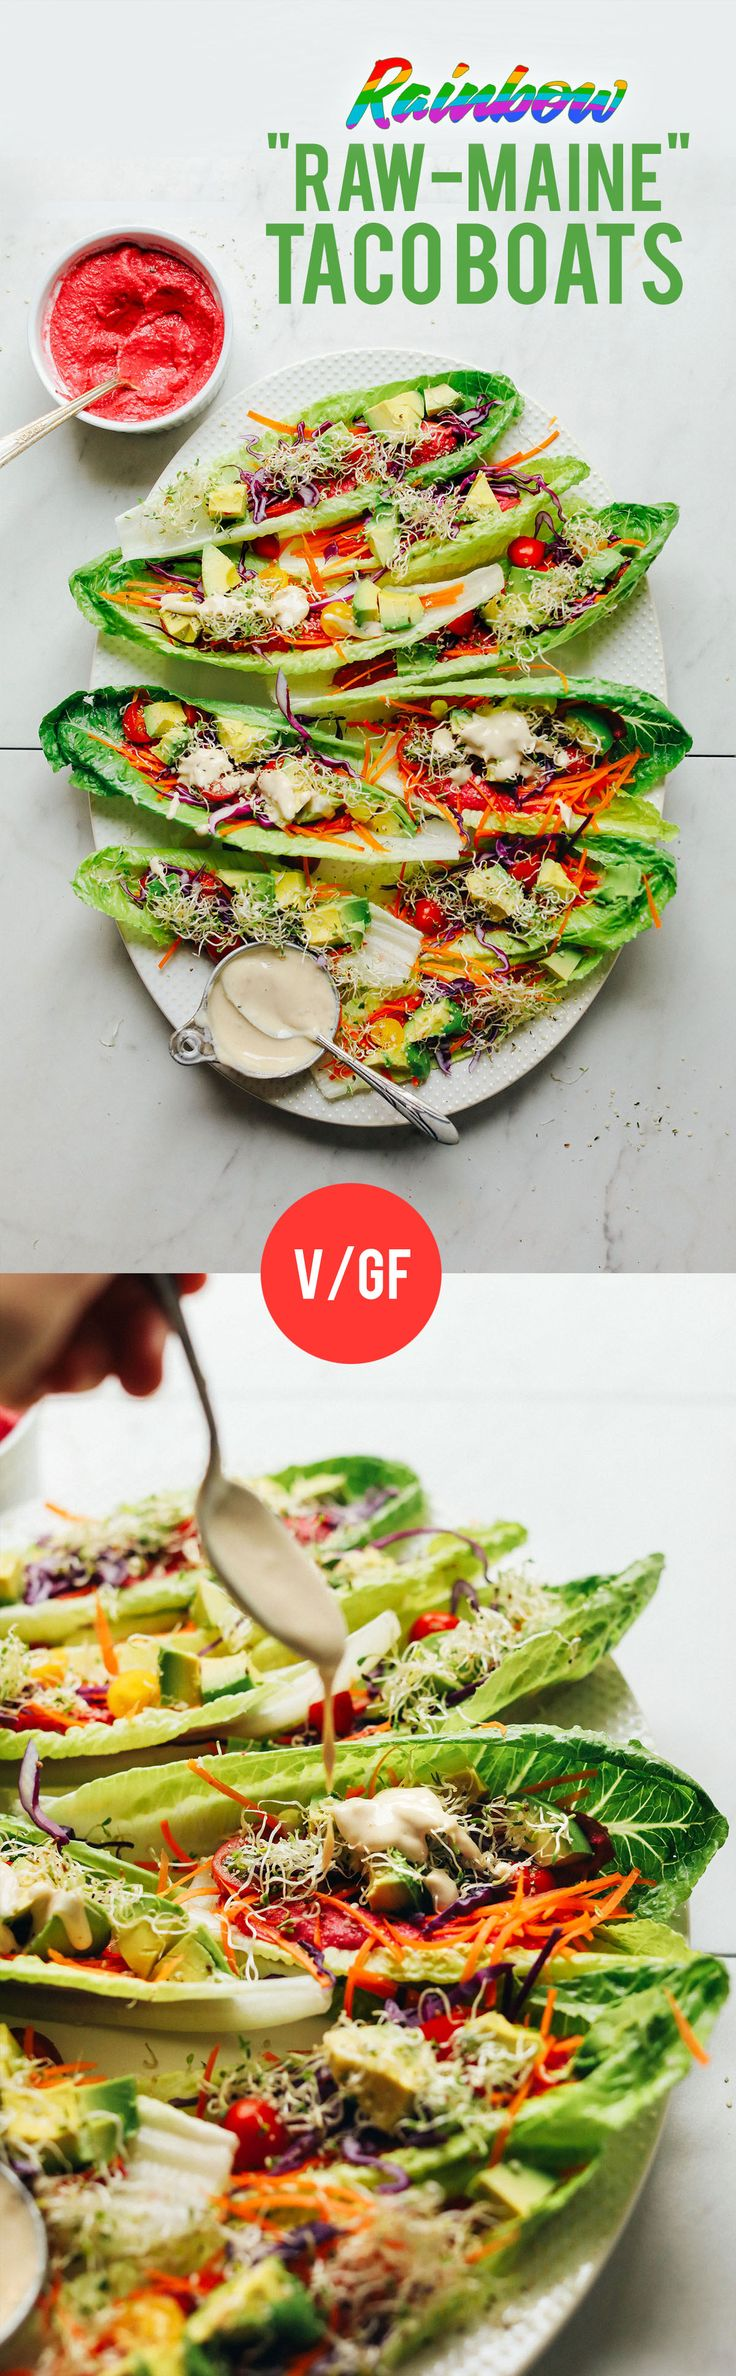 AMAZING Raw-Maine Taco Boats! 15 minutes, no cooking required, SO healthy!